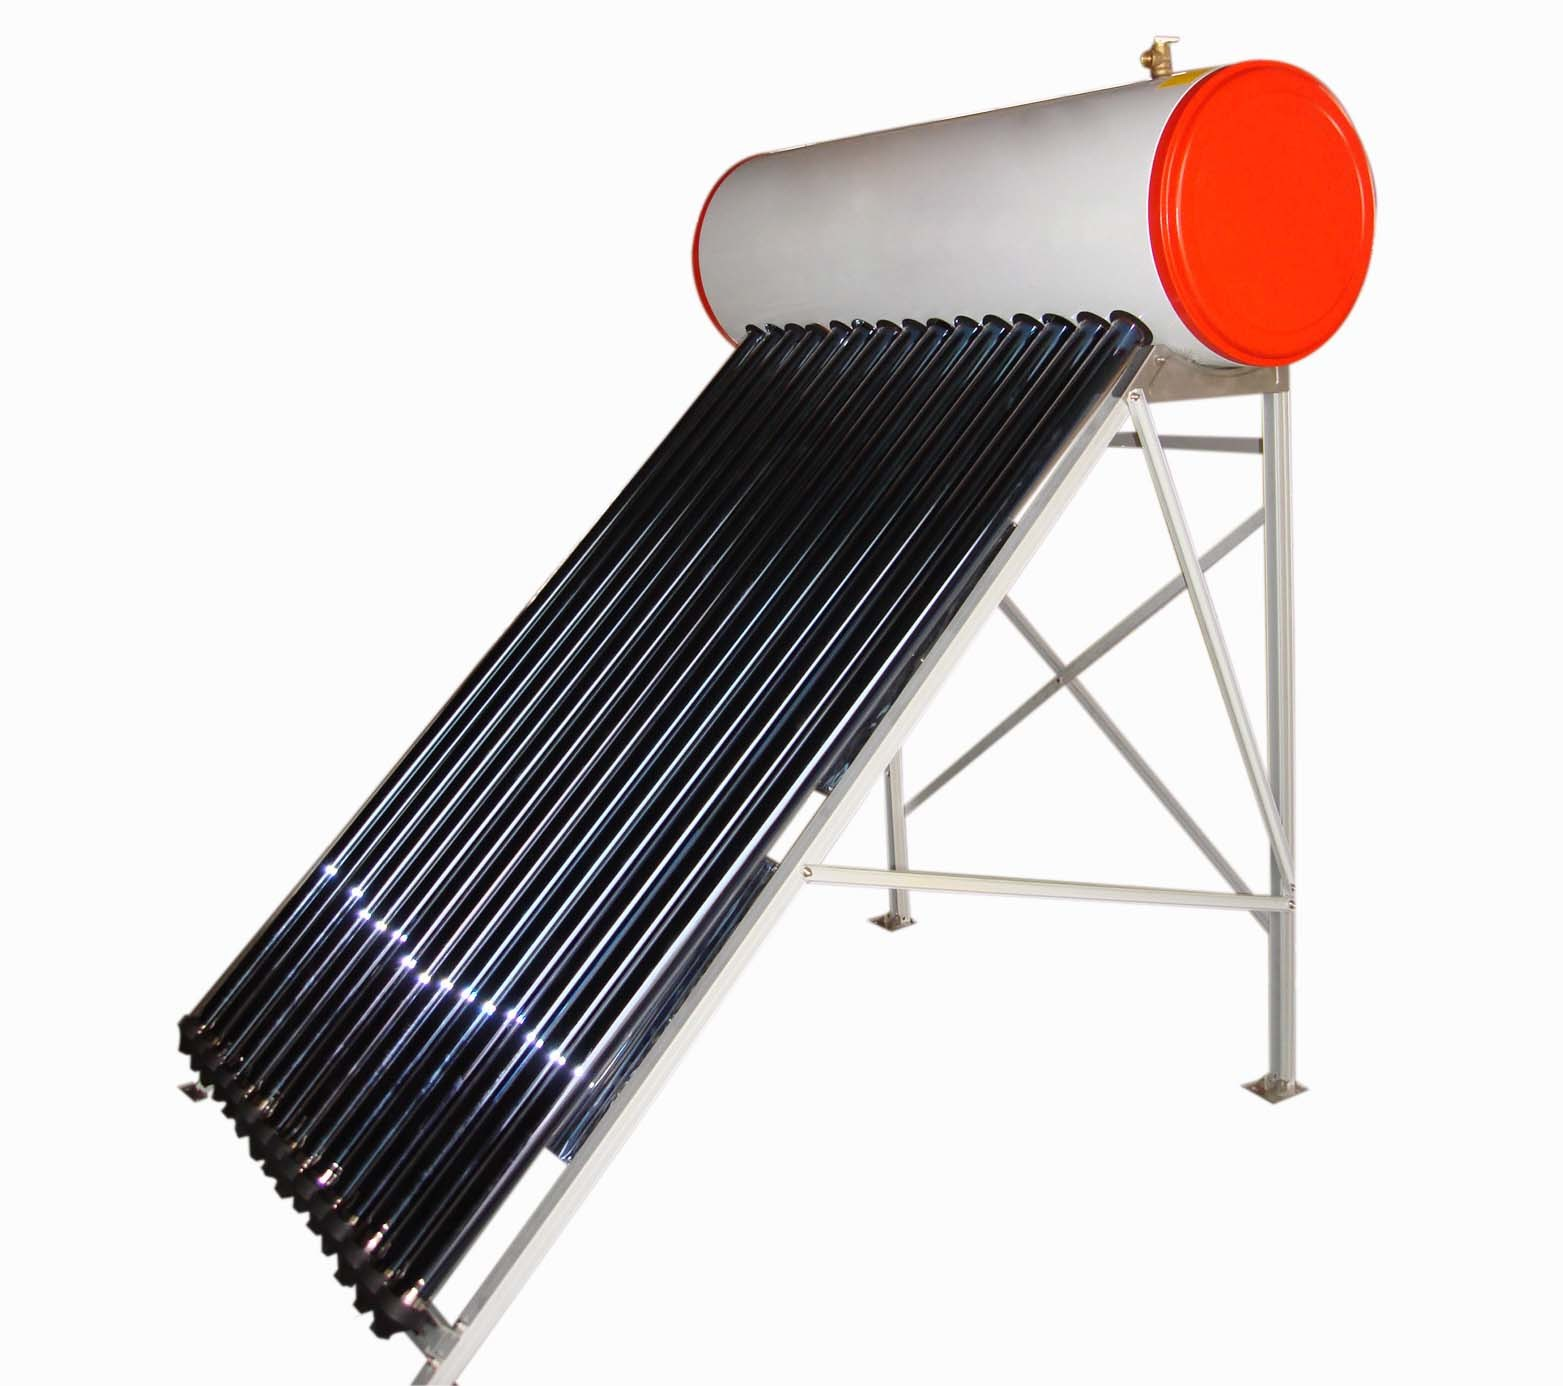 Low Pressure Homemade Solar Panels to Heat Water